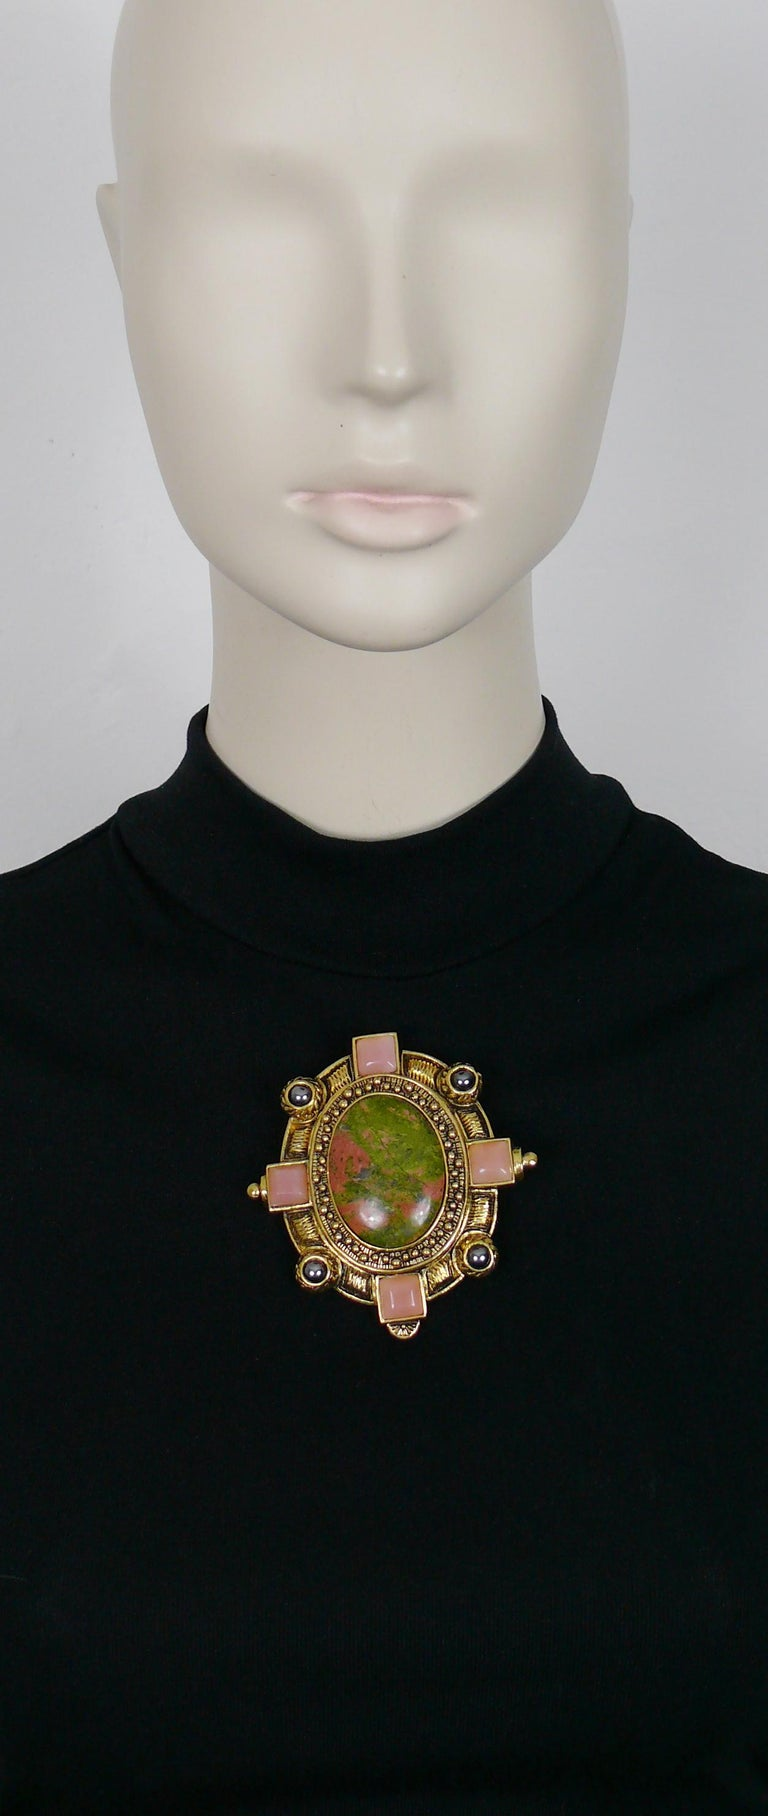 CHRISTIAN DIOR BOUTIQUE vintage massive antiqued gold toned brooch embellished with a large oval hard stone cabochon (marbled green and pink colours), hematite colour beads and square baby pink glass cabochons.  Could be worn as a brooch or